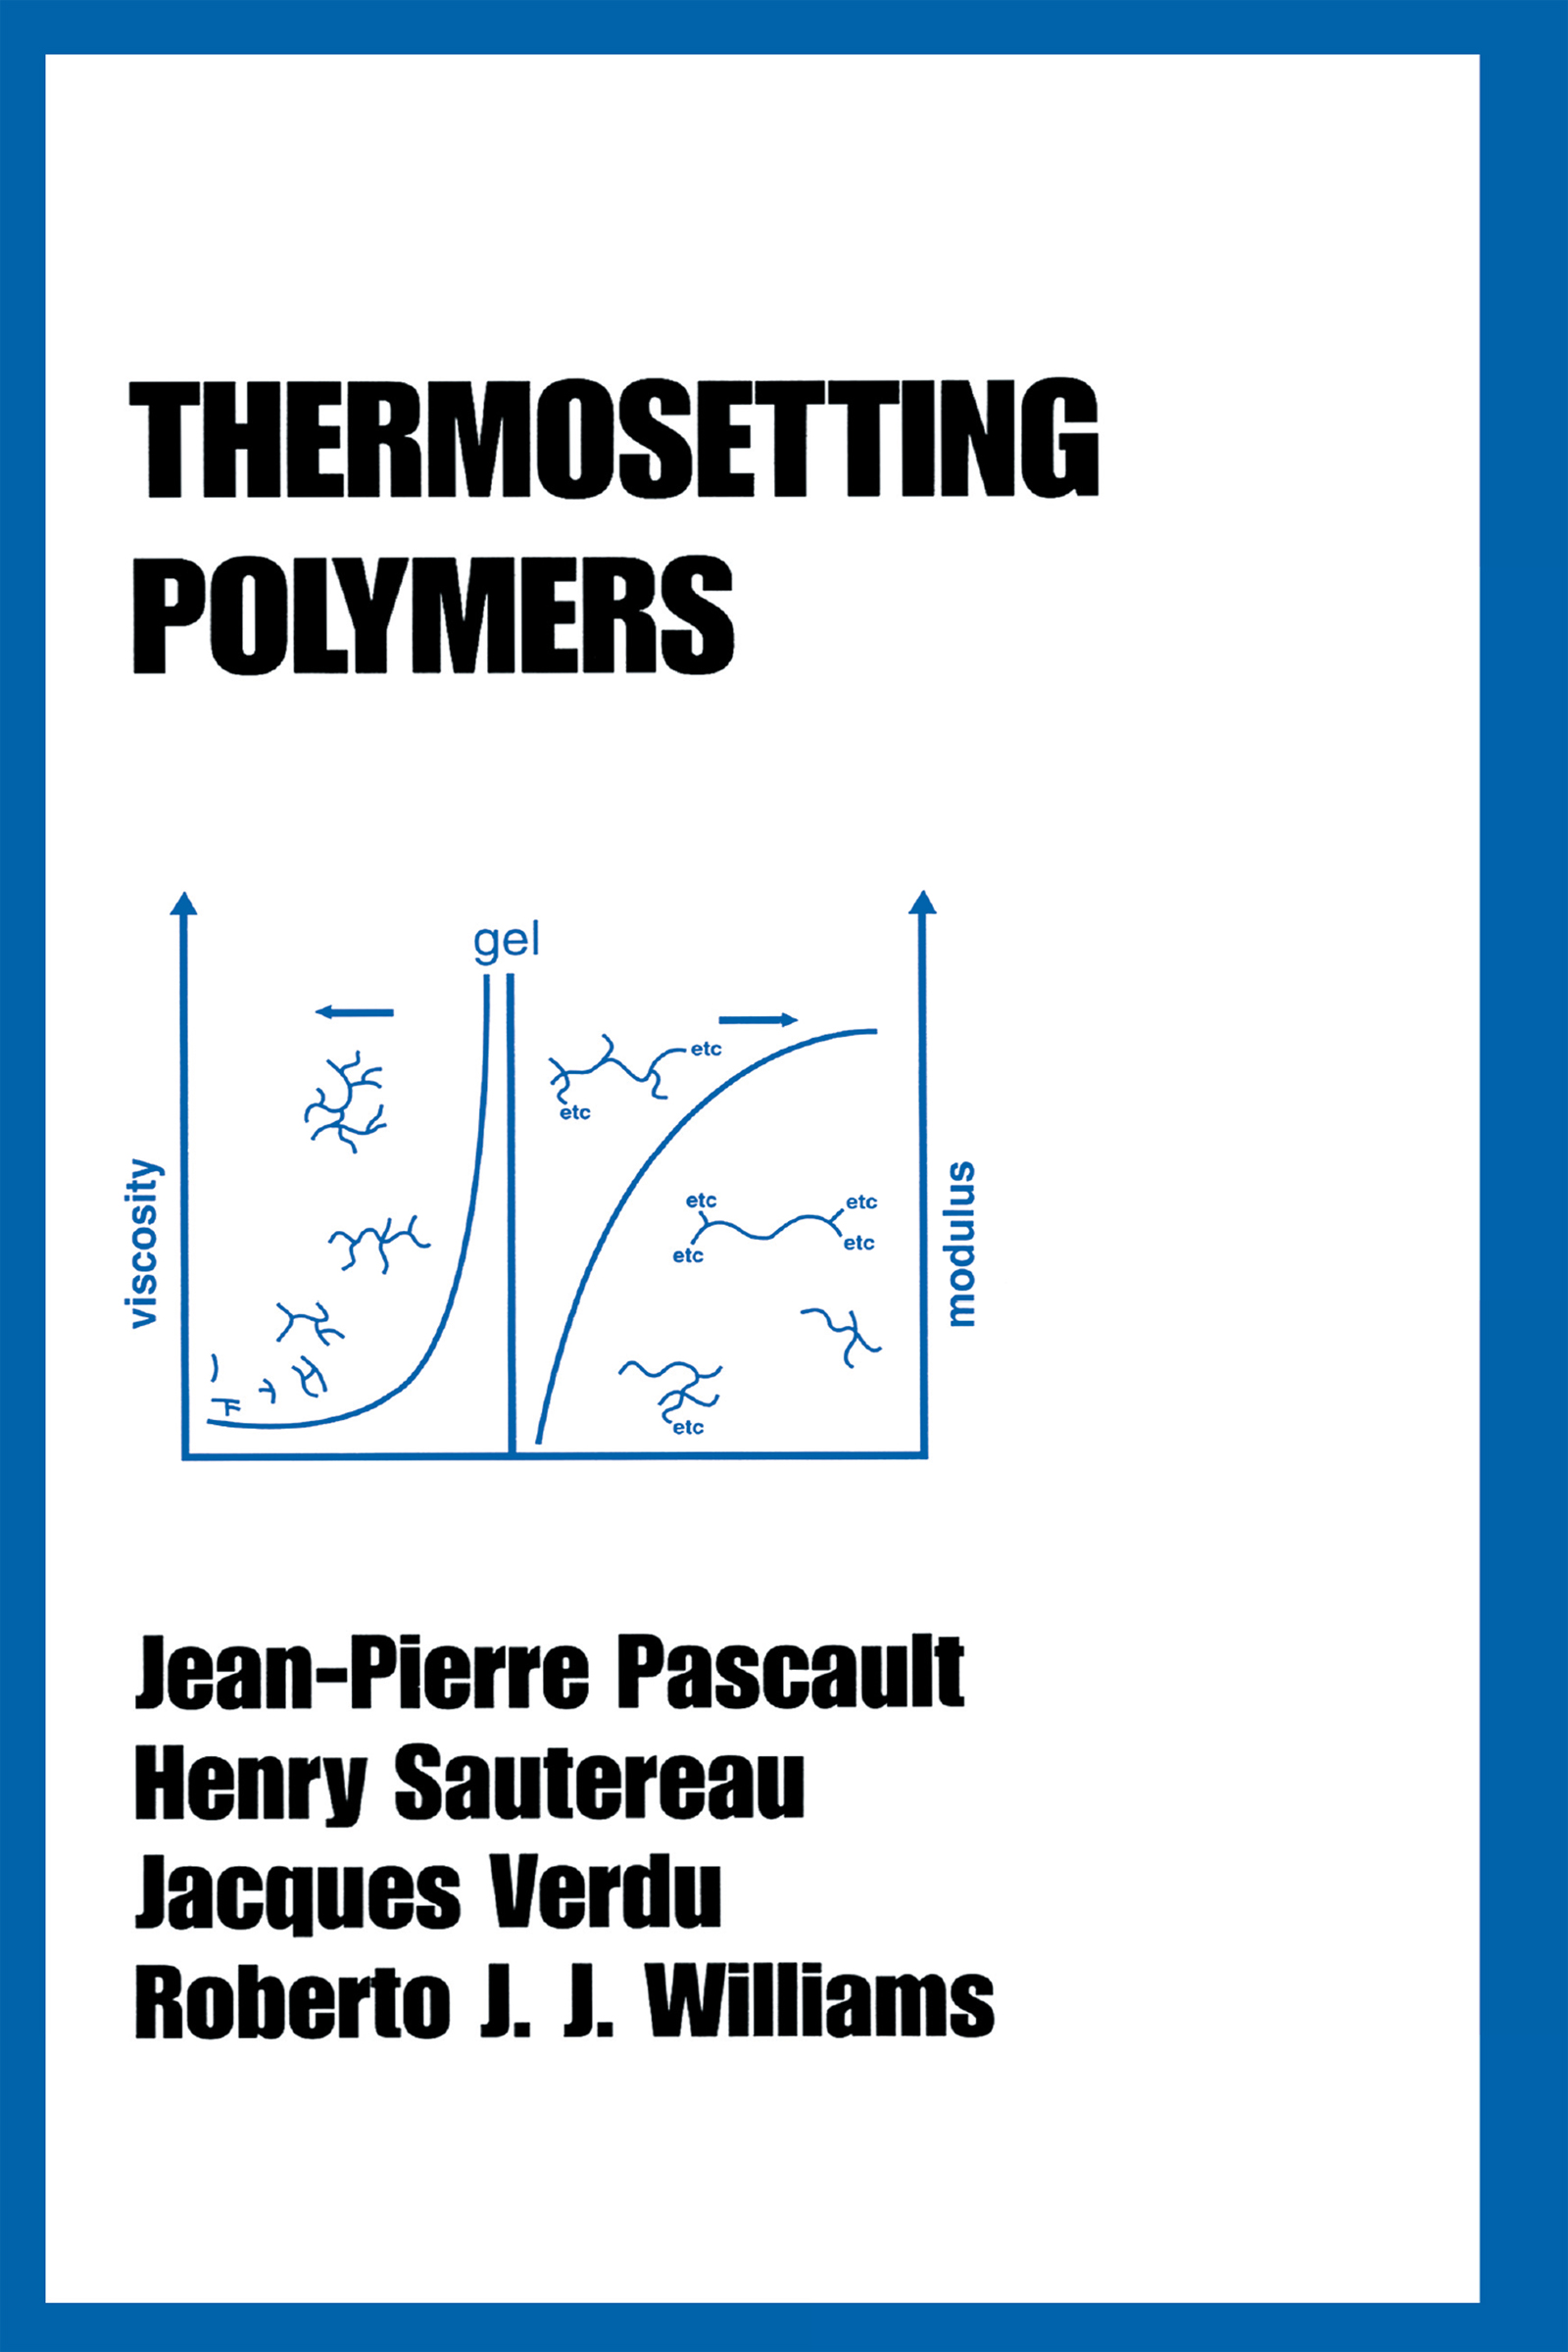 Yielding and Fracture of Polymer Networks